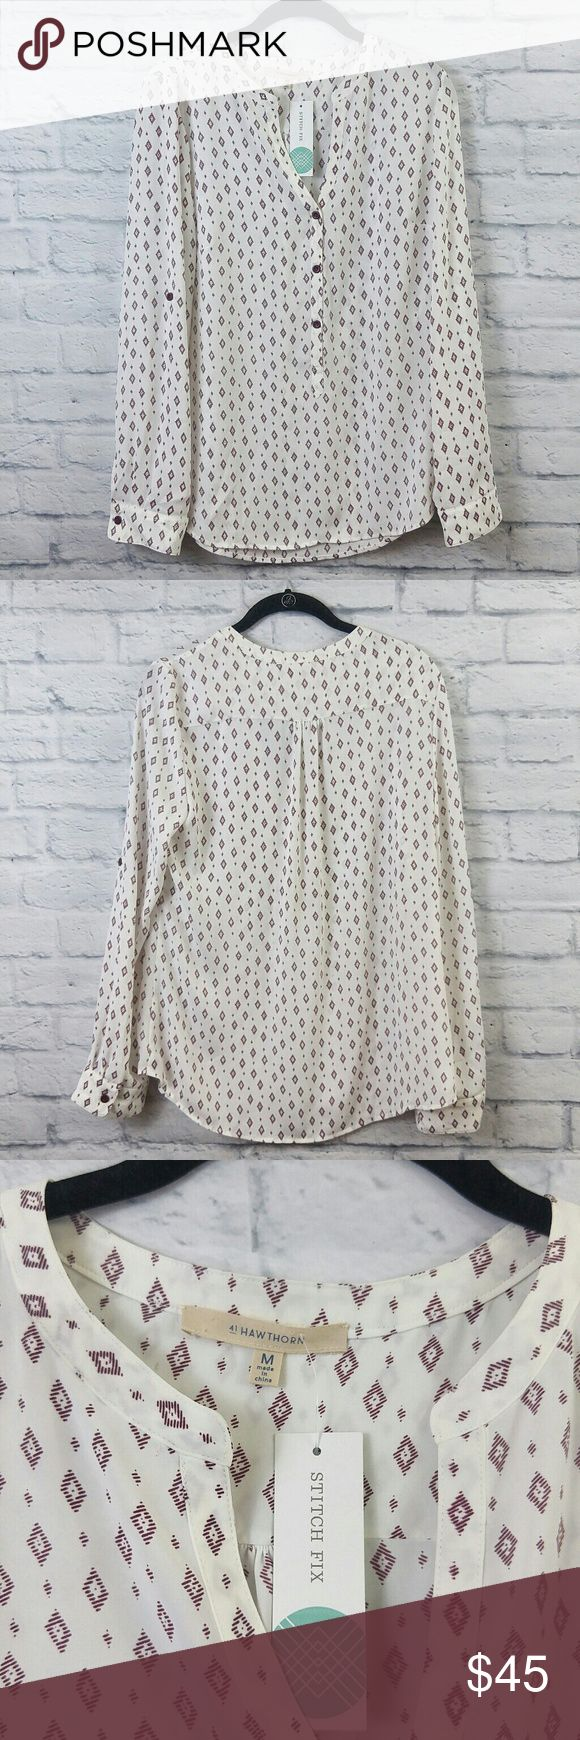 """NWT Stitch Fix 41Hawthorn Montreal Henley Top Med NWT Stitch Fix 41Hawthorn Montreal Henley Top Med.   Bust -19"""" Length -27"""" 00083418178 41 Hawthorn Tops Button Down Shirts"""